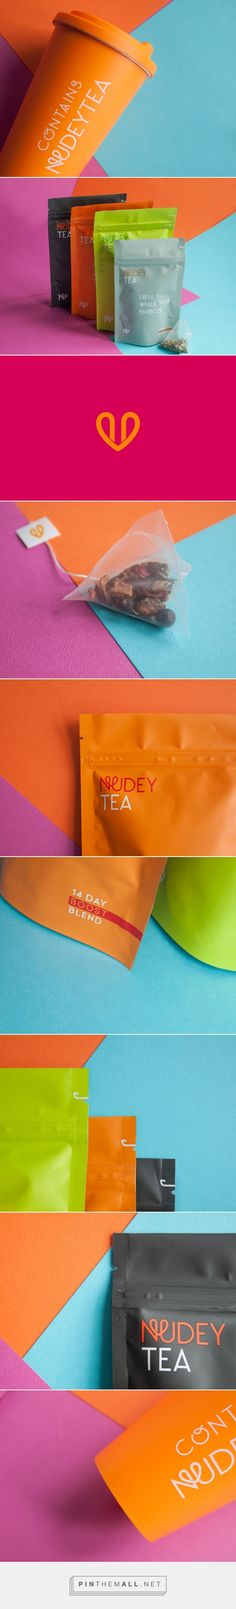 Nudeytea on Packaging Design Served by nice cream cone